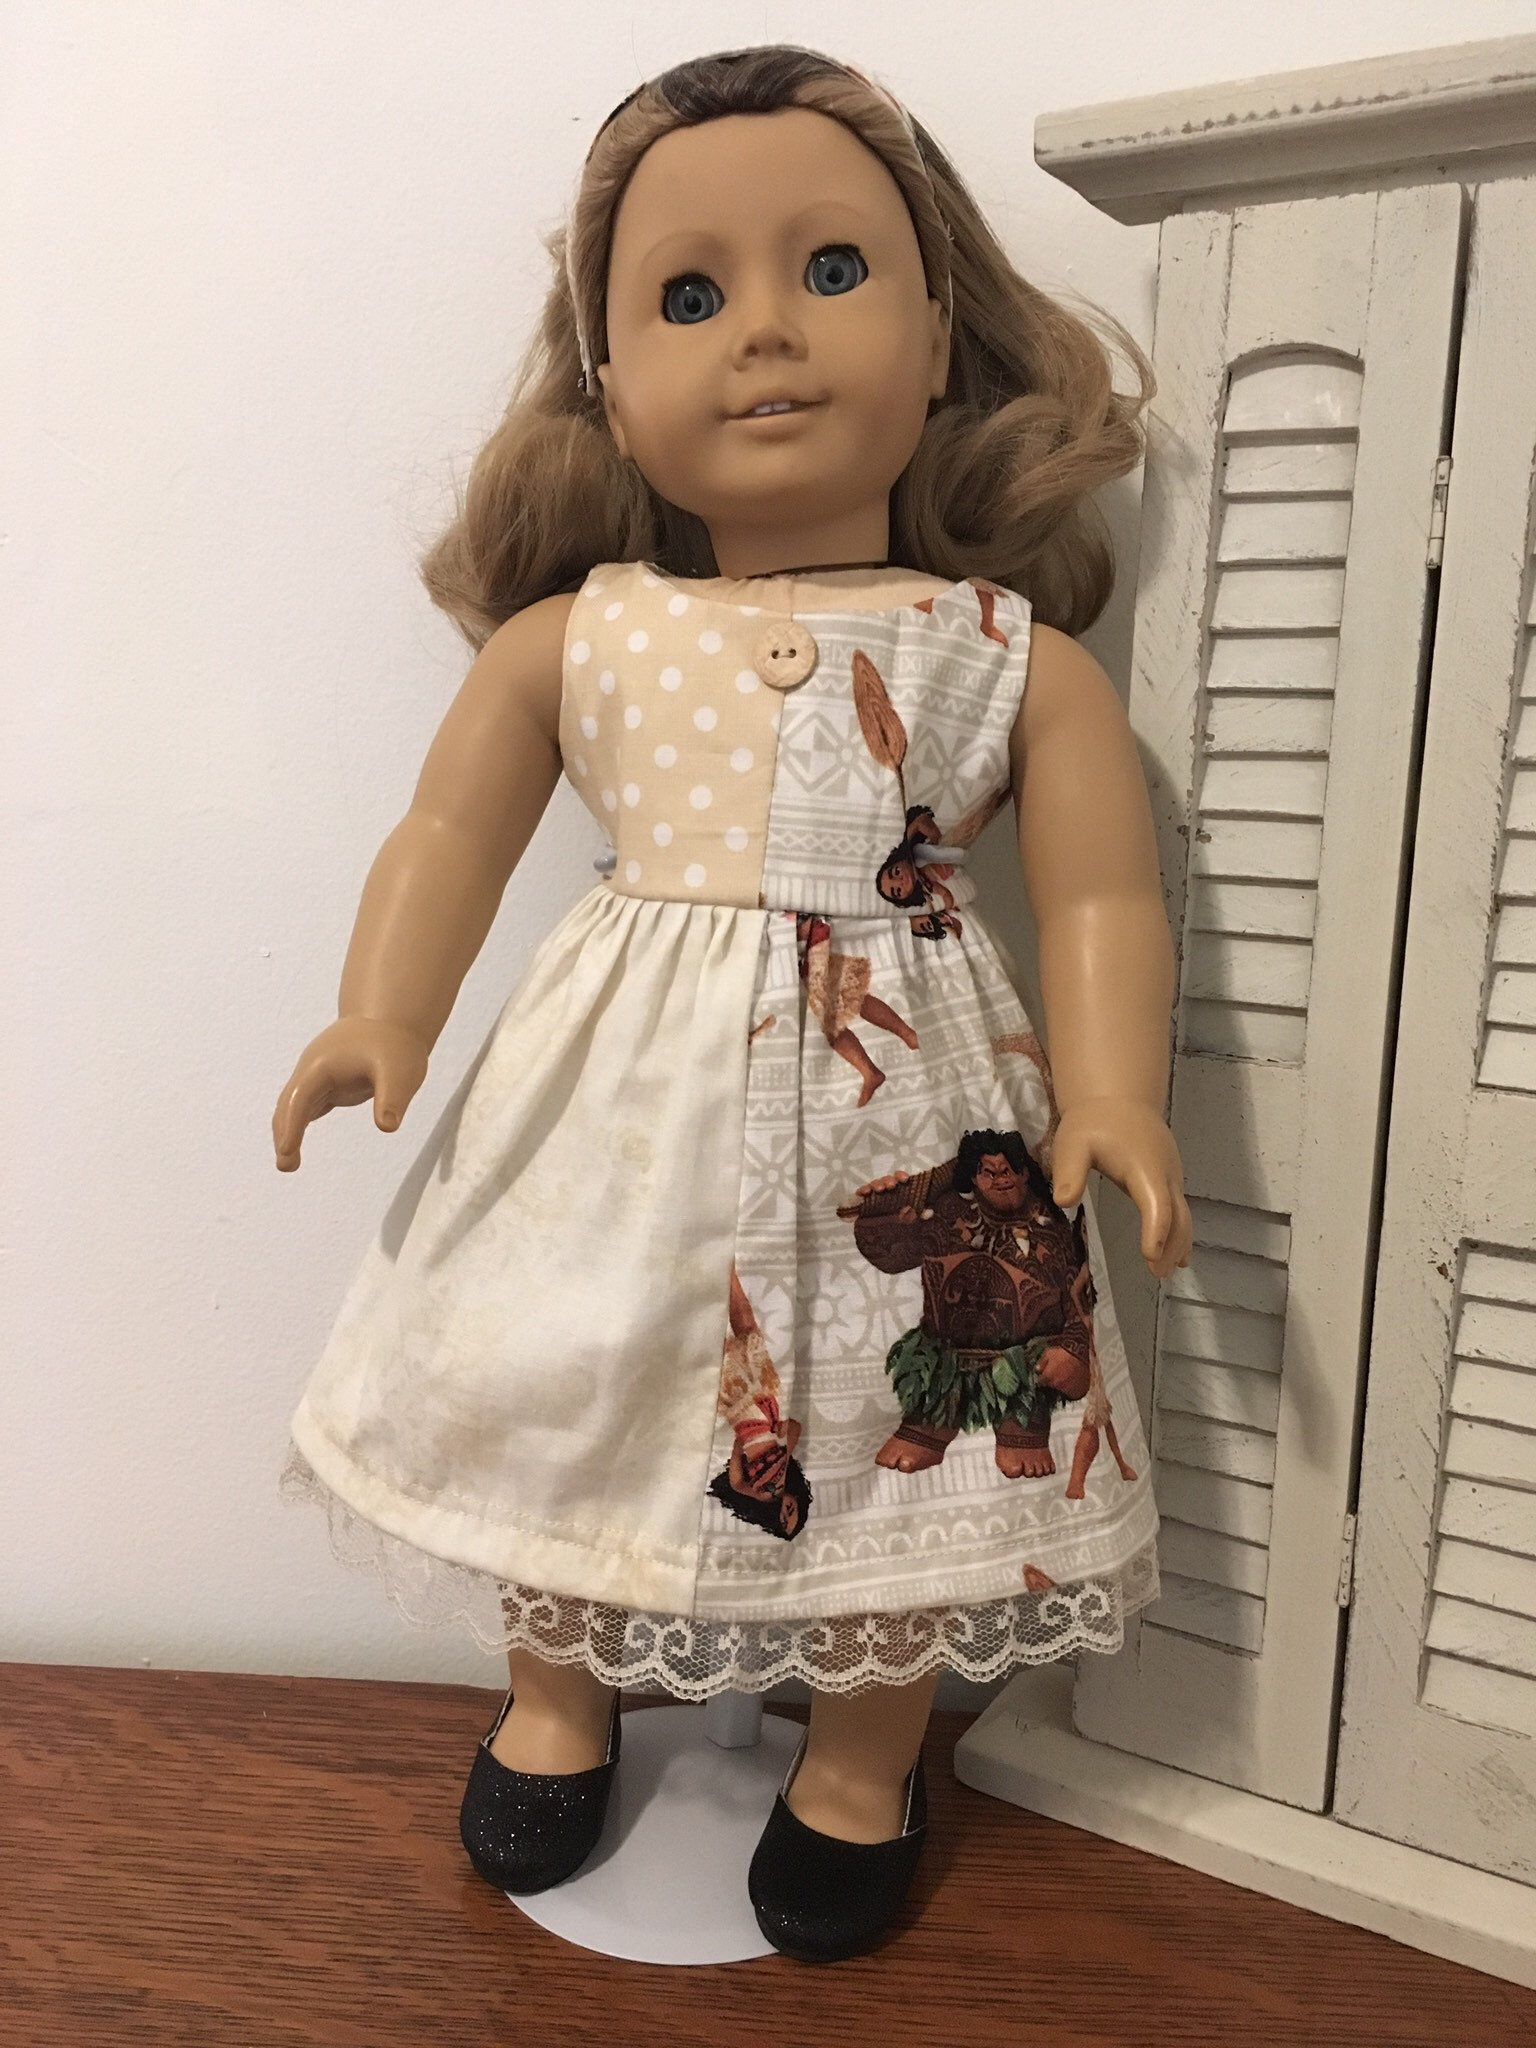 American girl doll outfit ~ 18 inch doll outfit ~ granddaughter gift ~ our generation doll ~ journey girl doll outfit ~ Aesthetic clothing